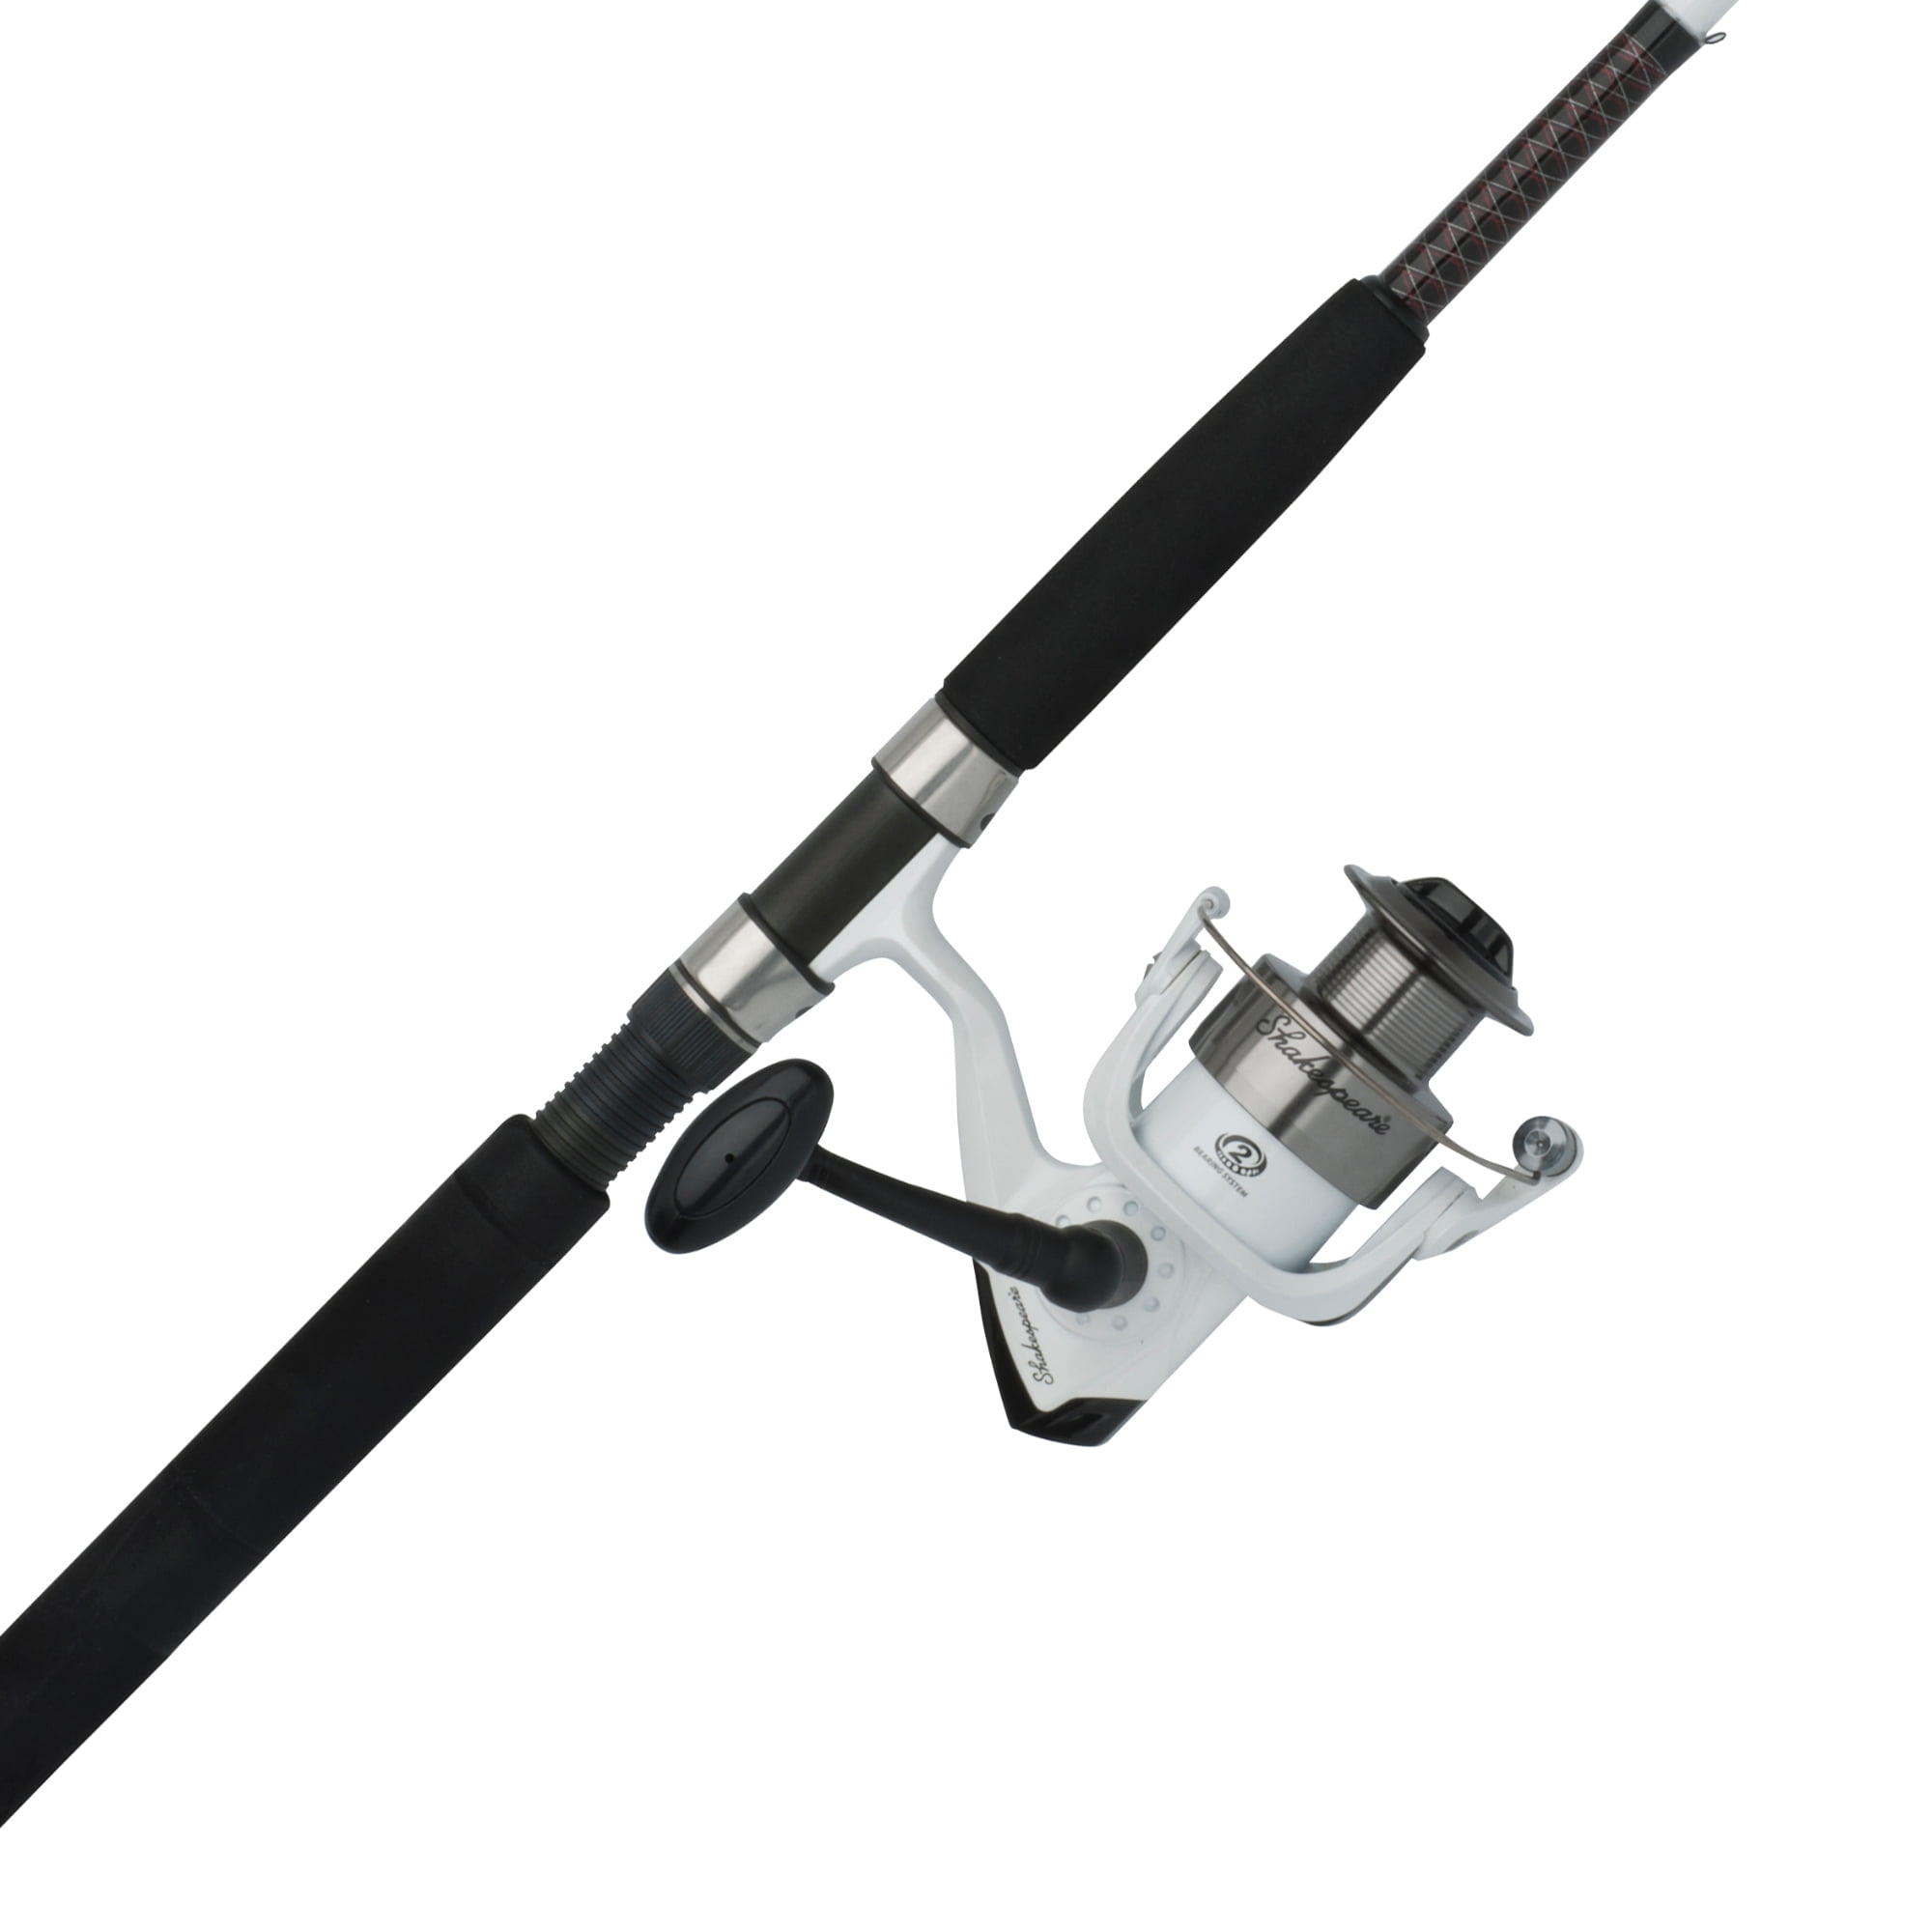 Shakespeare Ugly Stik Catfish Spinning Reel and Fishing Rod Combo by Shakespeare